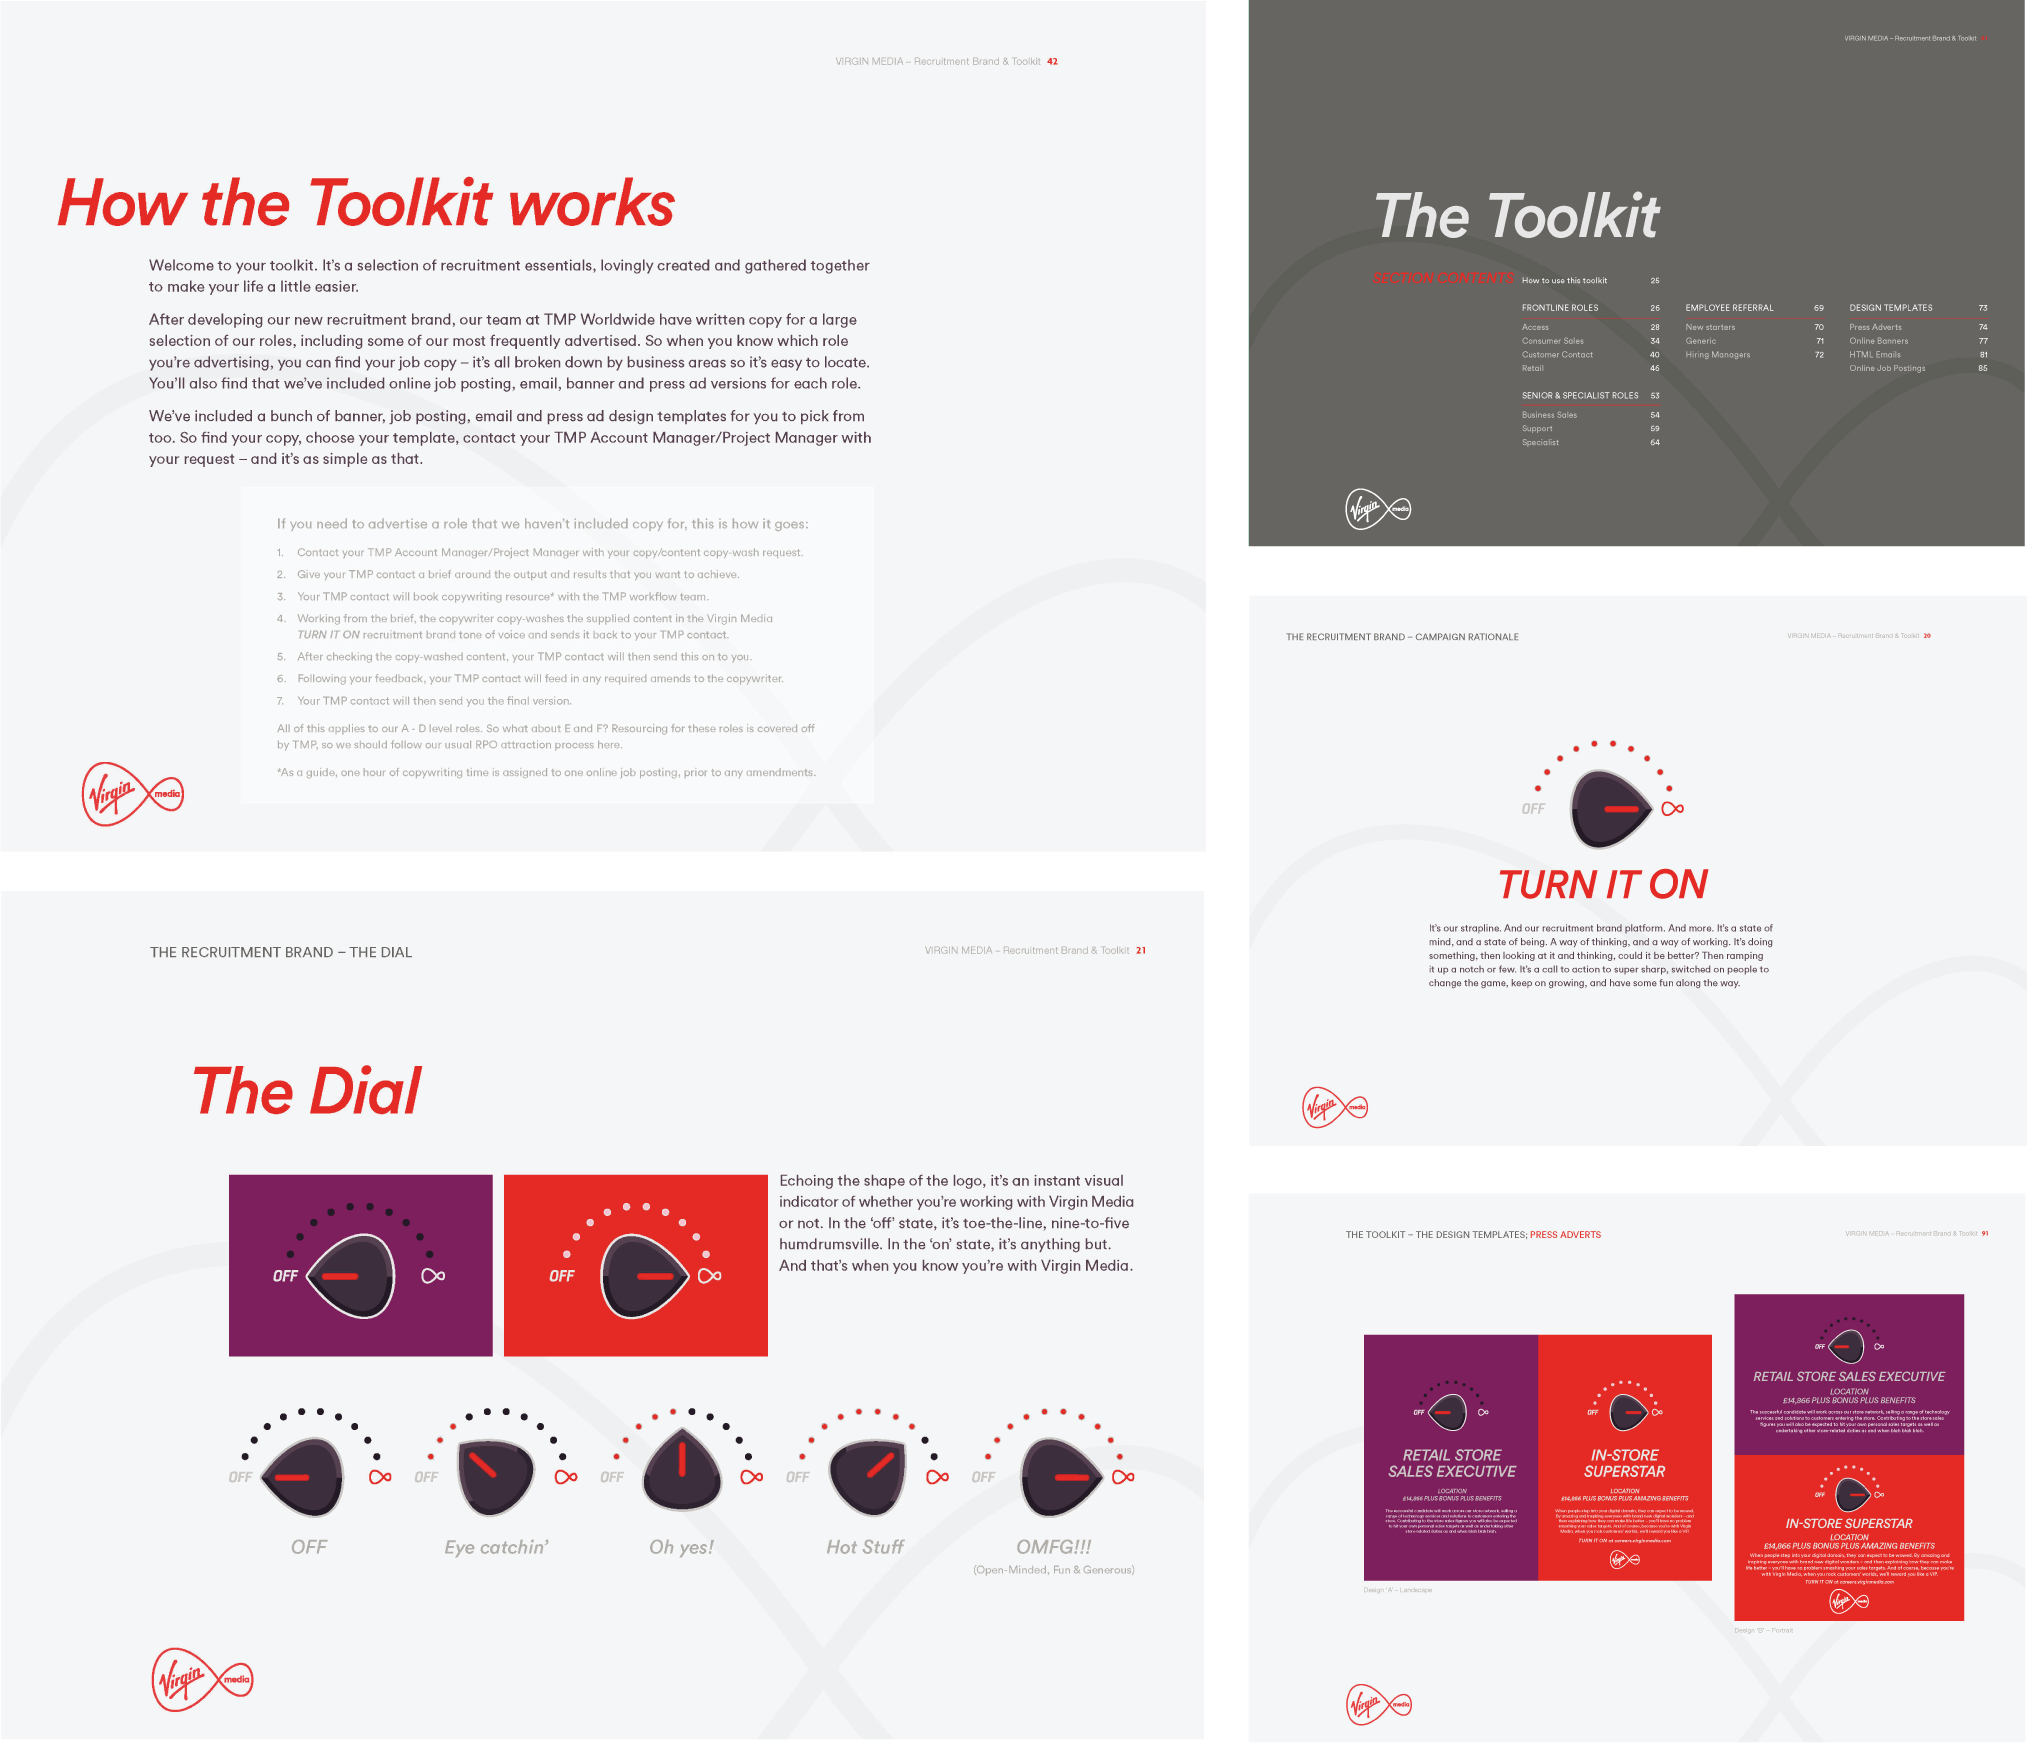 virgin media toolkit